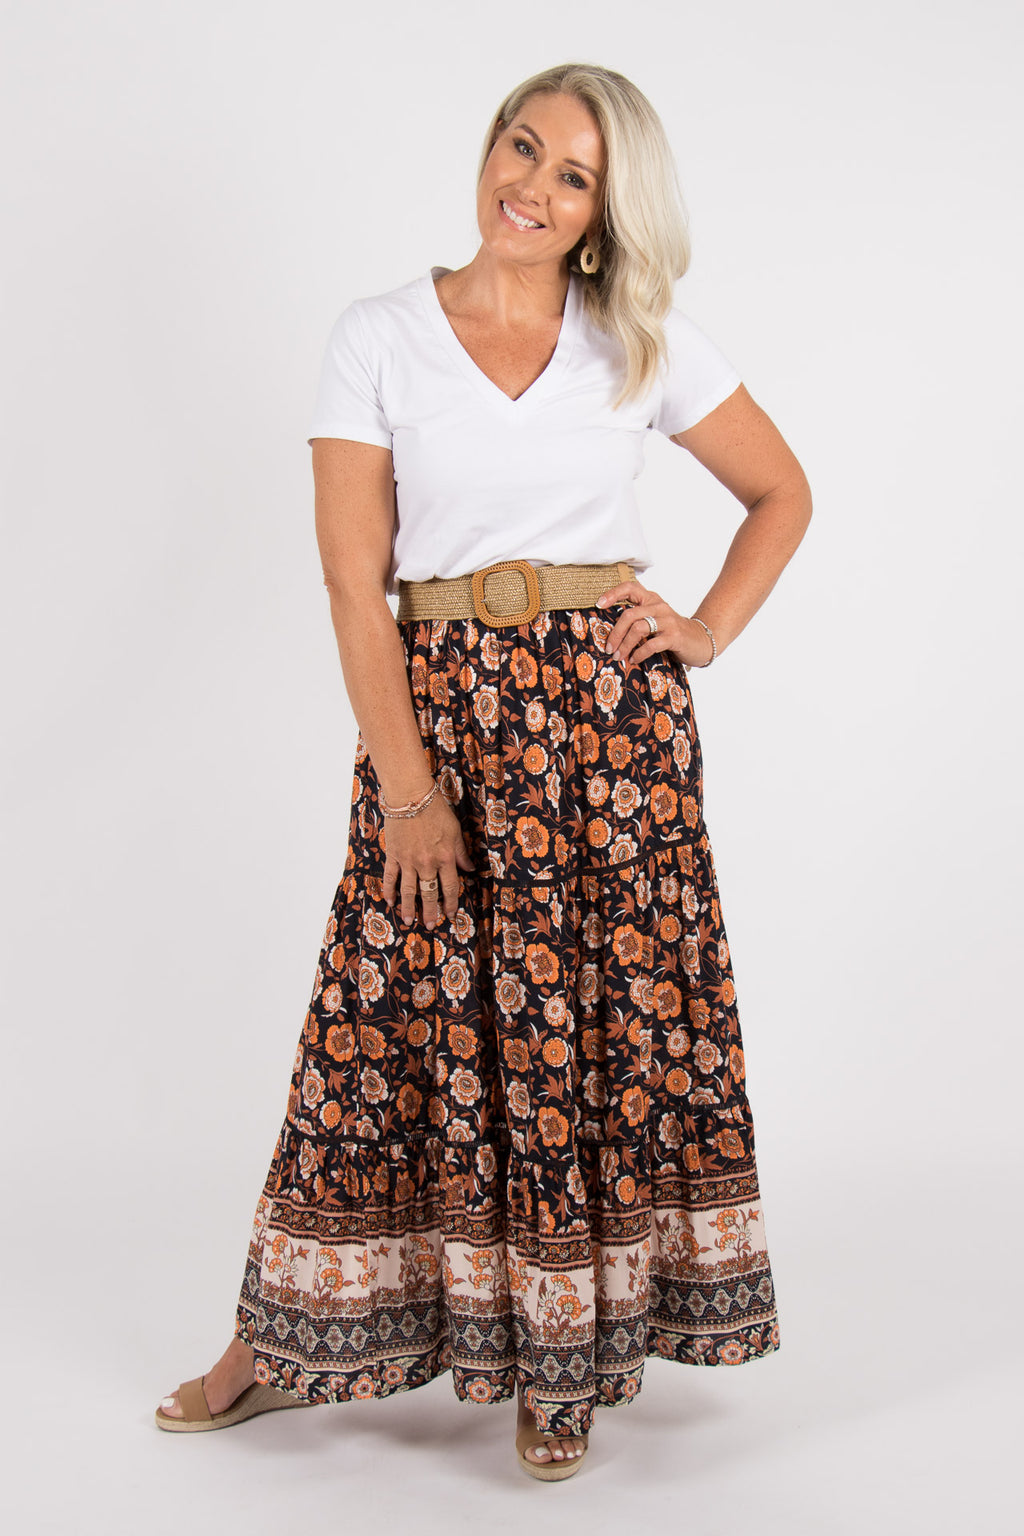 Arizona Maxi Skirt in Black/Orange